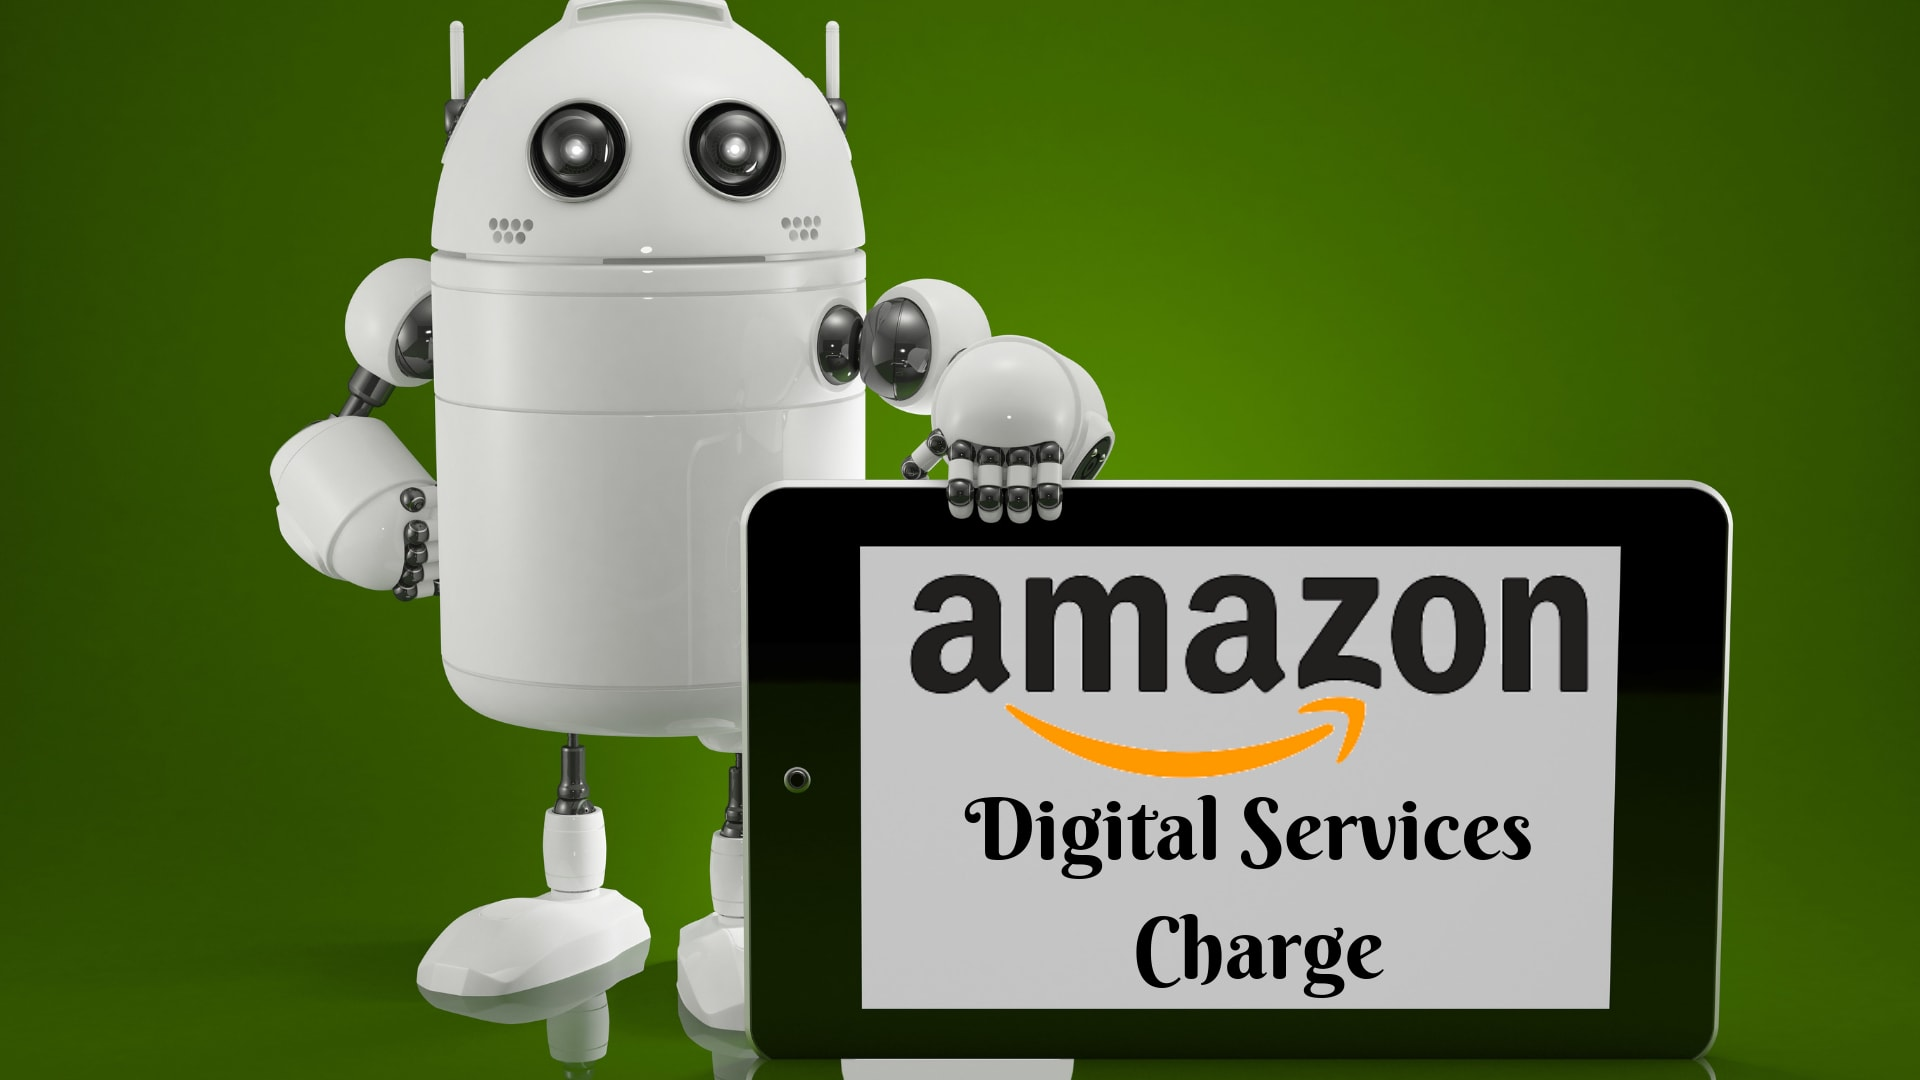 All Amazon Digital Services Charges [May 2020 Update]